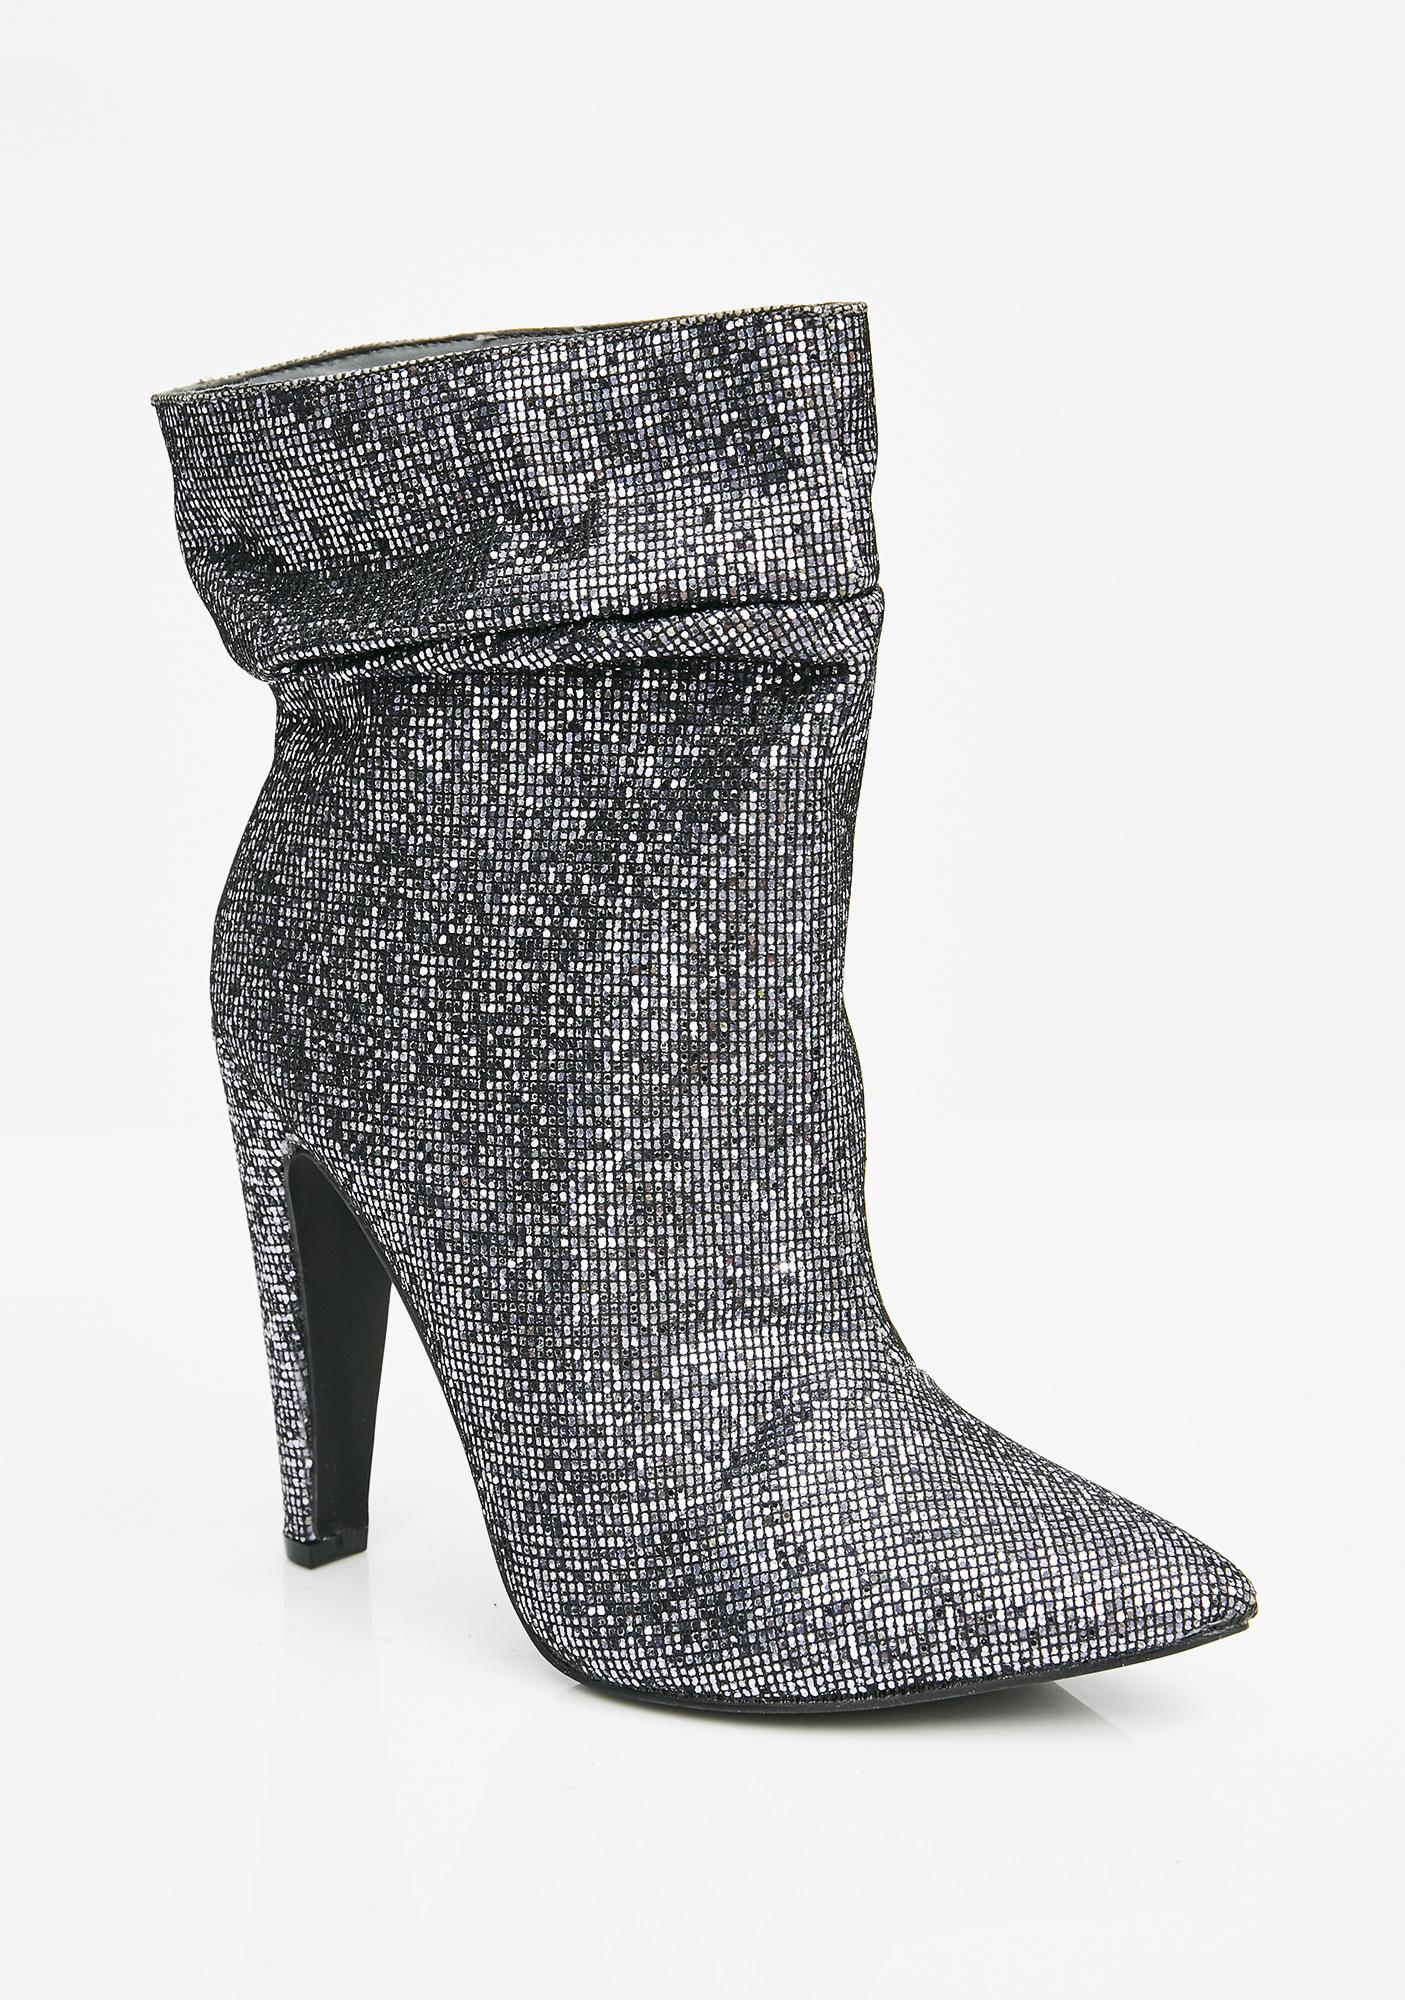 Shining Armor Chainmail Boots